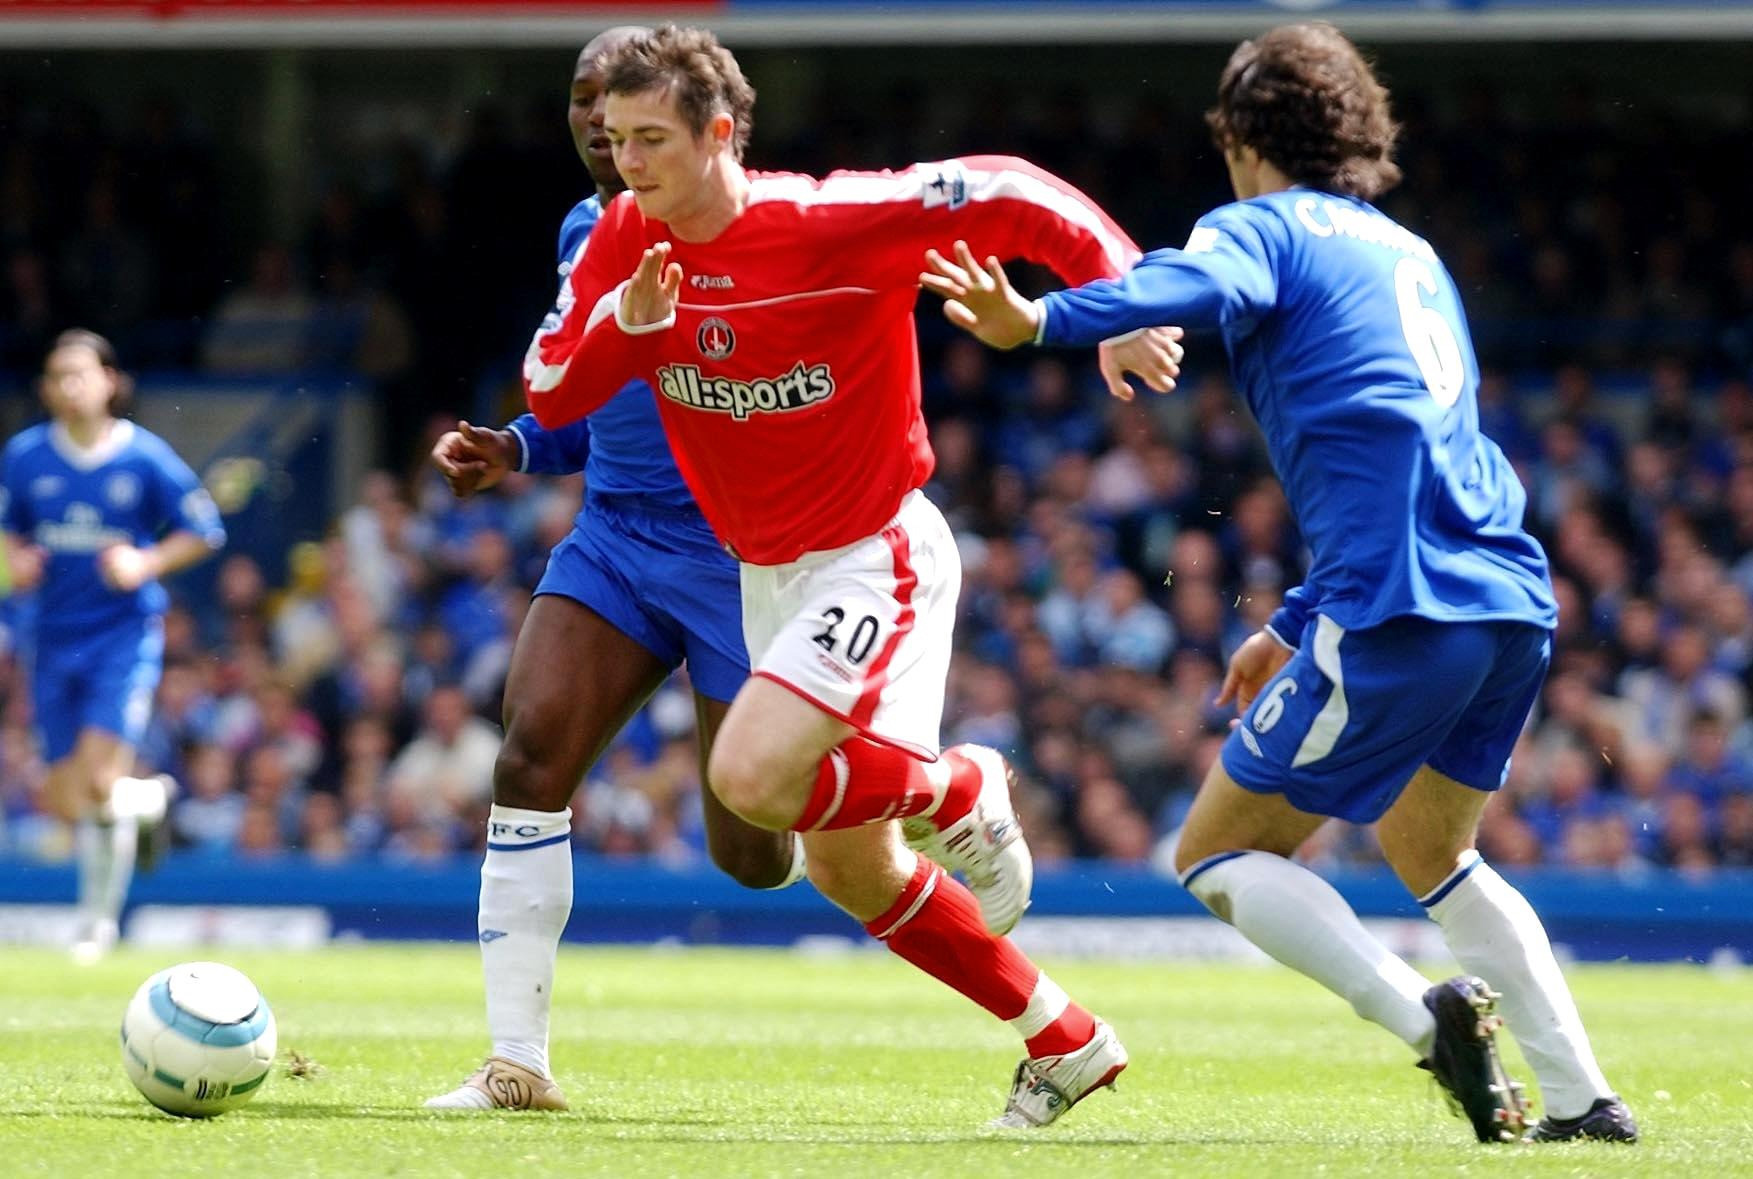 Charlton Athletic's Bryan Hughes (C) in action against Chelsea's Ricardo Carvalho (R)